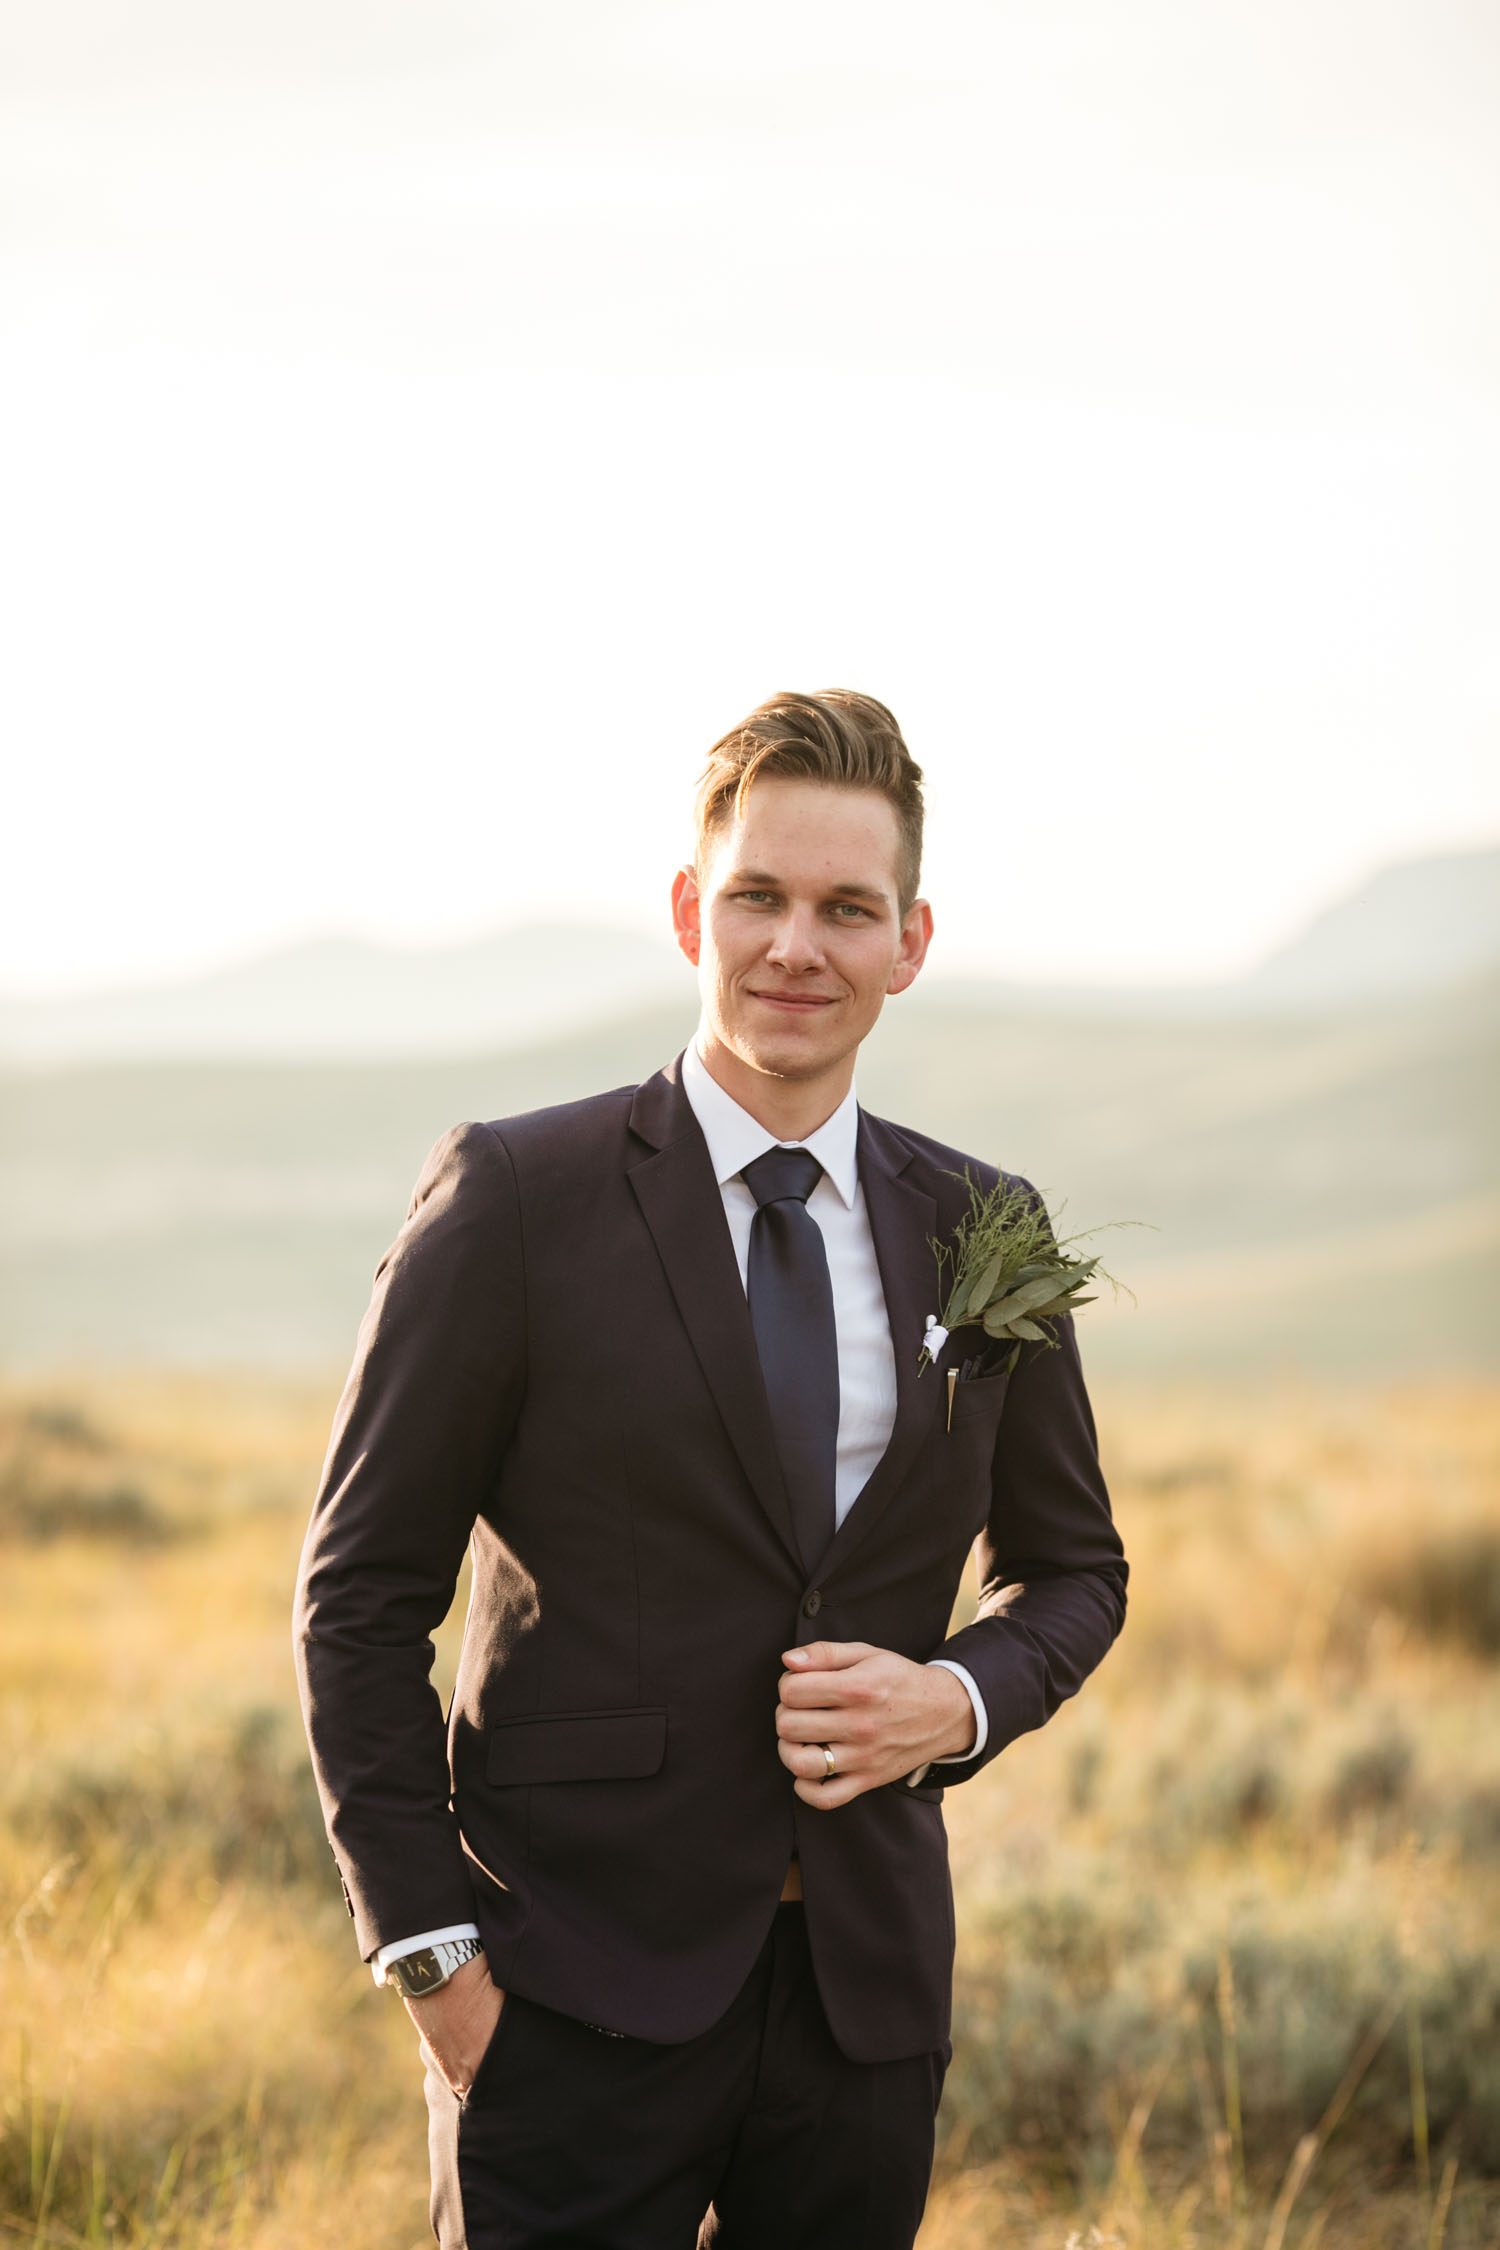 Groom In Black Suite Navy Tie Trendy Eucalyptus Lapel